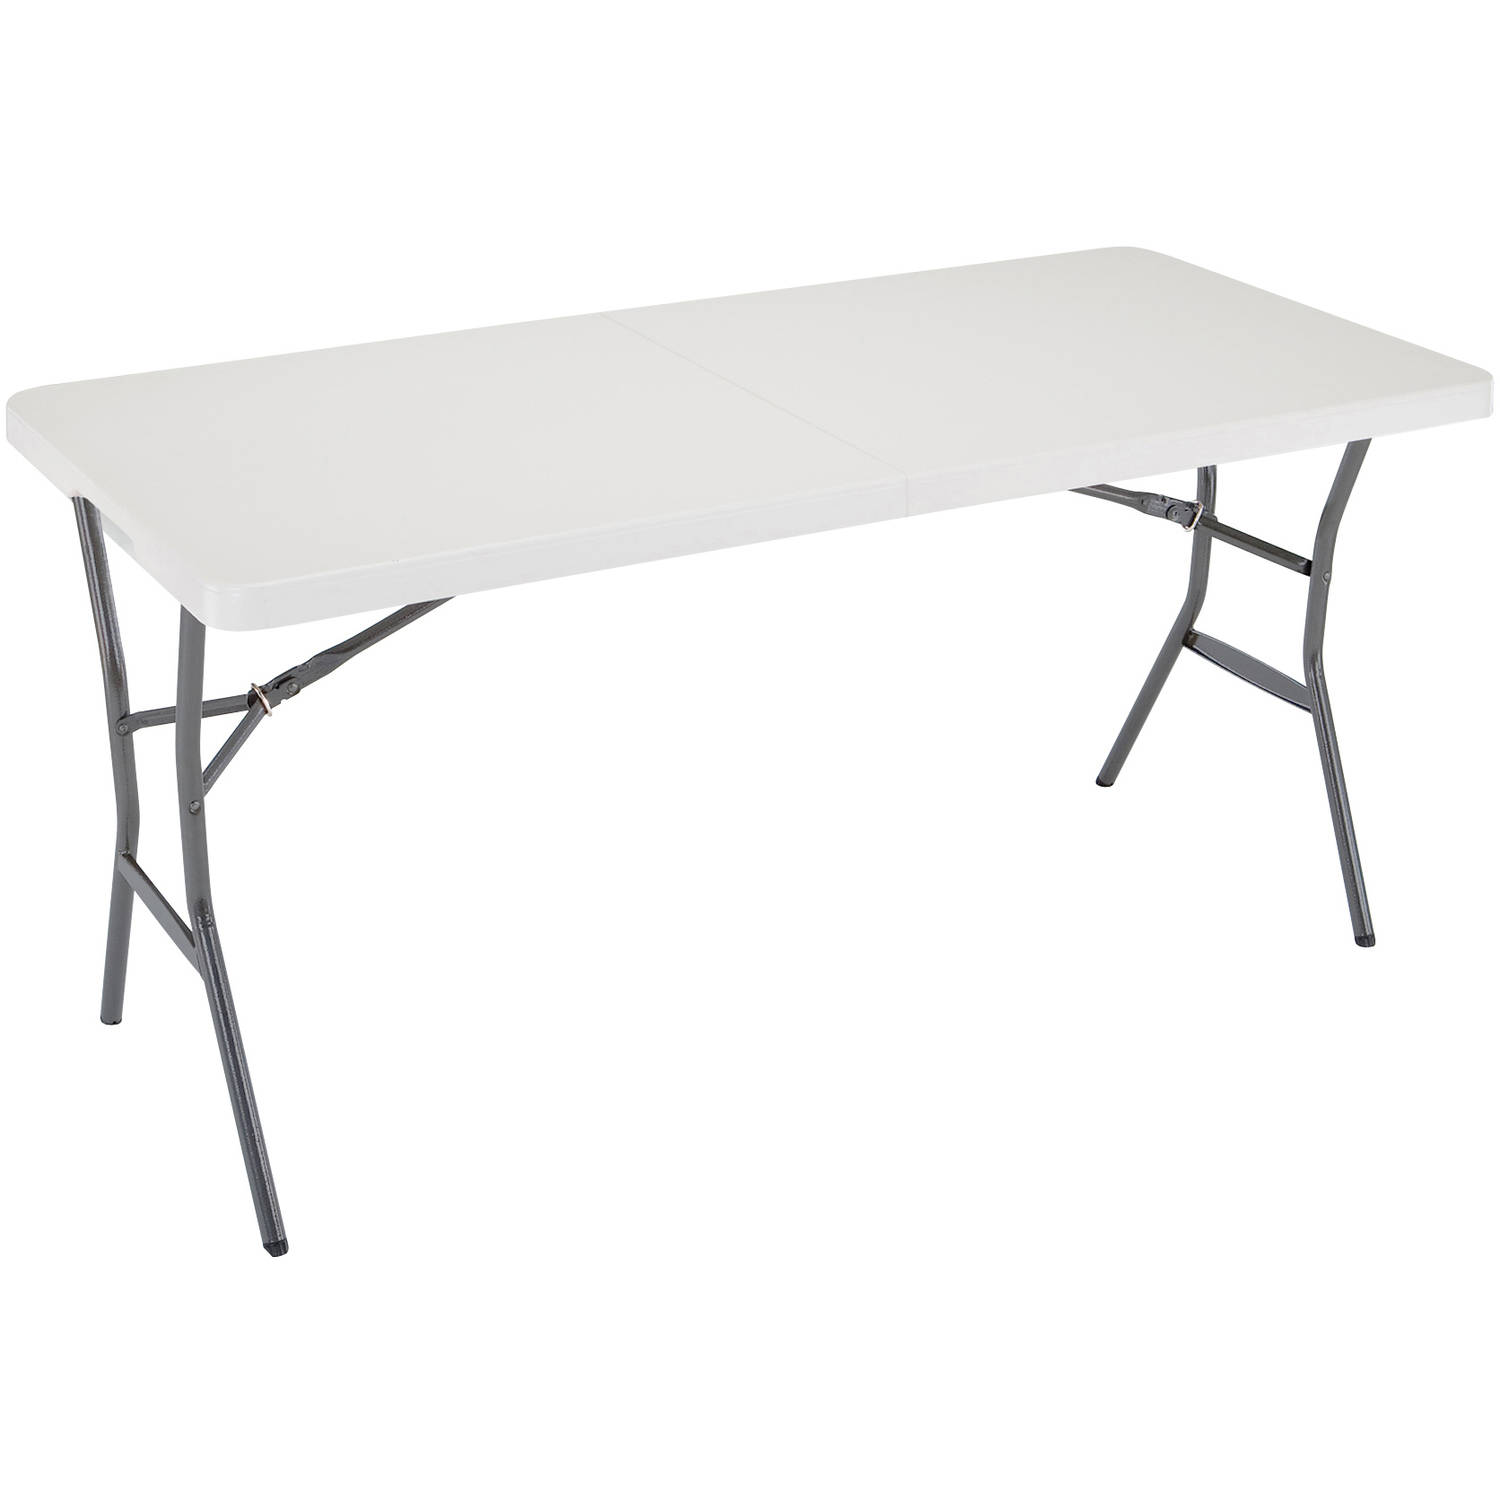 Ozark Trail 5 Center Folding Camping Table White Walmart Com Walmart Com